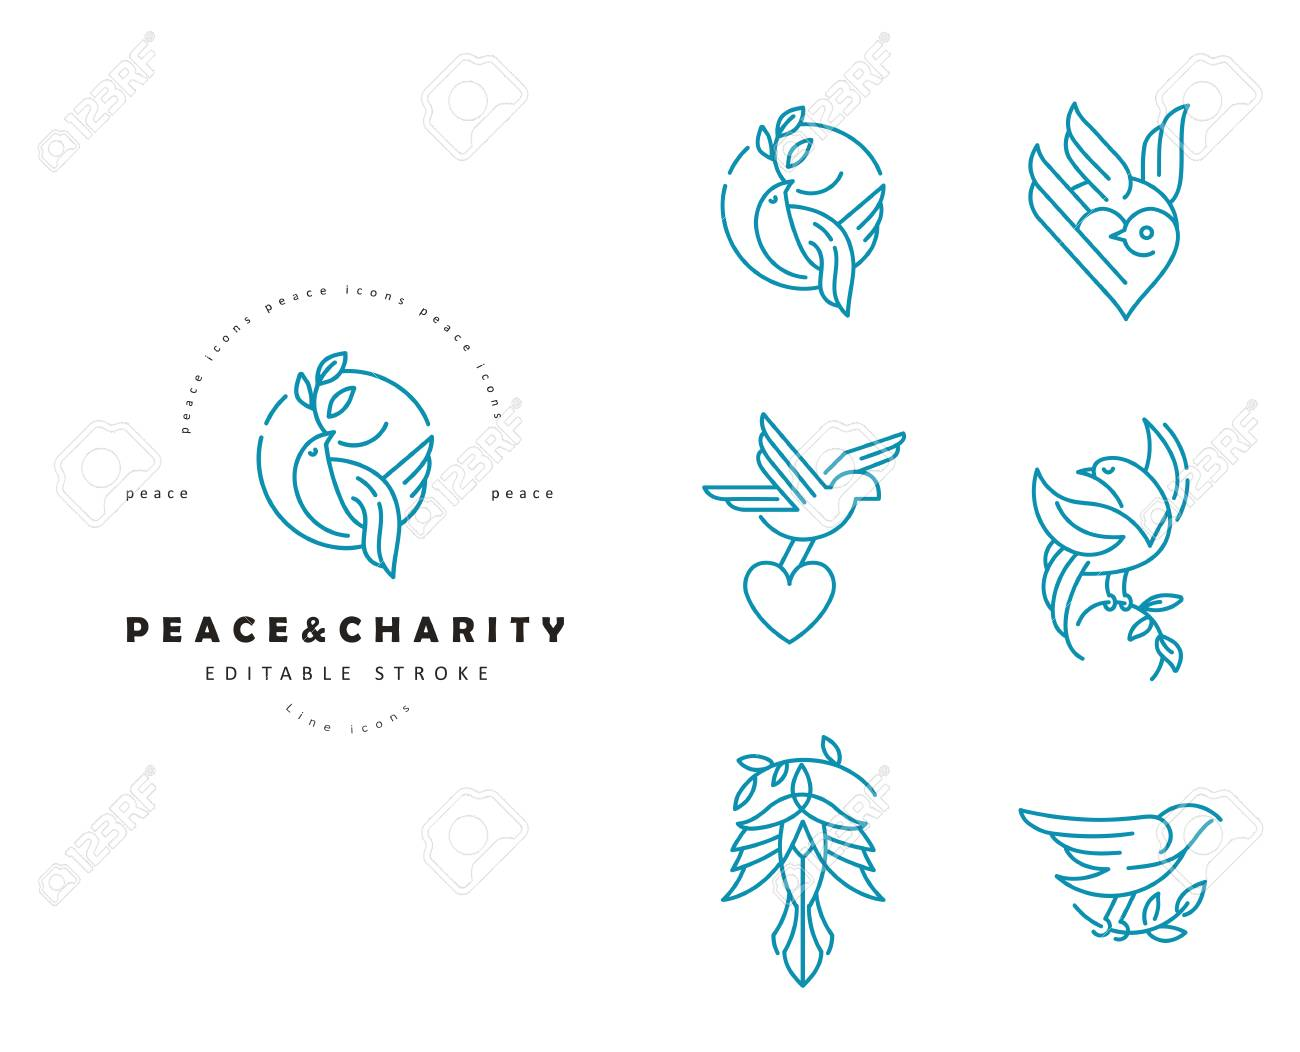 Vector icon and logo peace and charity  Editable outline stroke